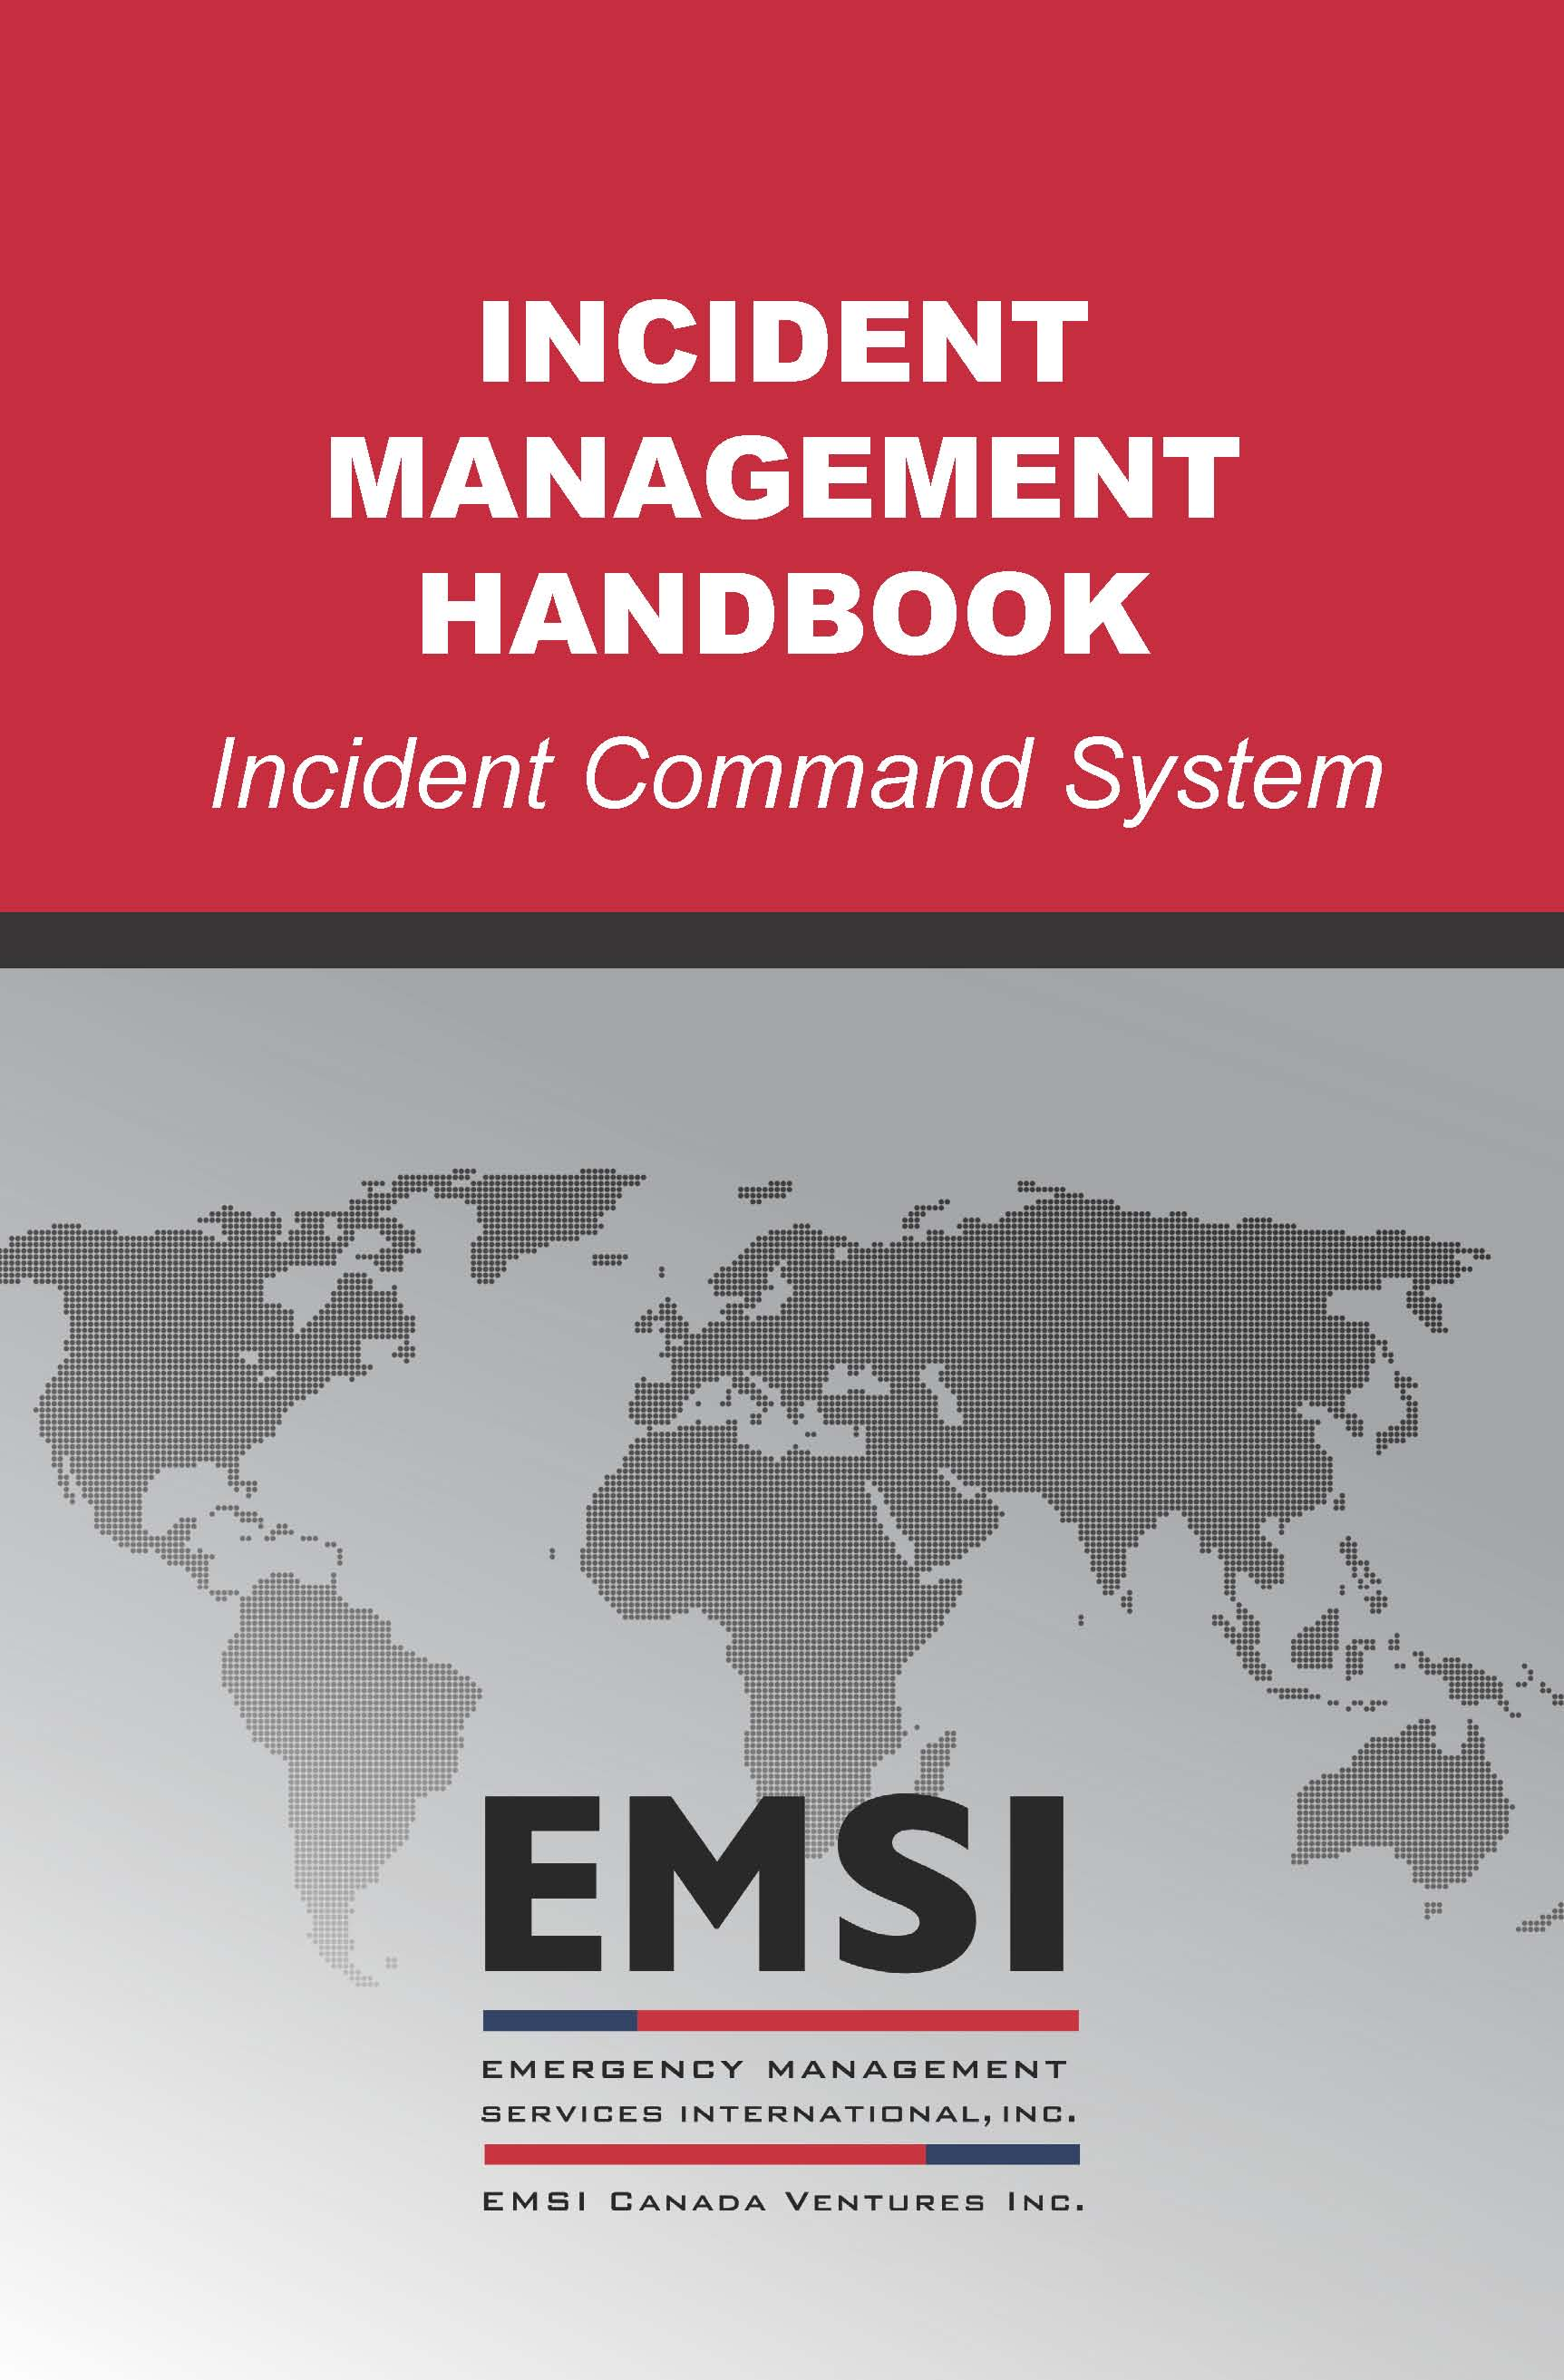 EMSI's Incident Management Handbook Available Now! - EMSI